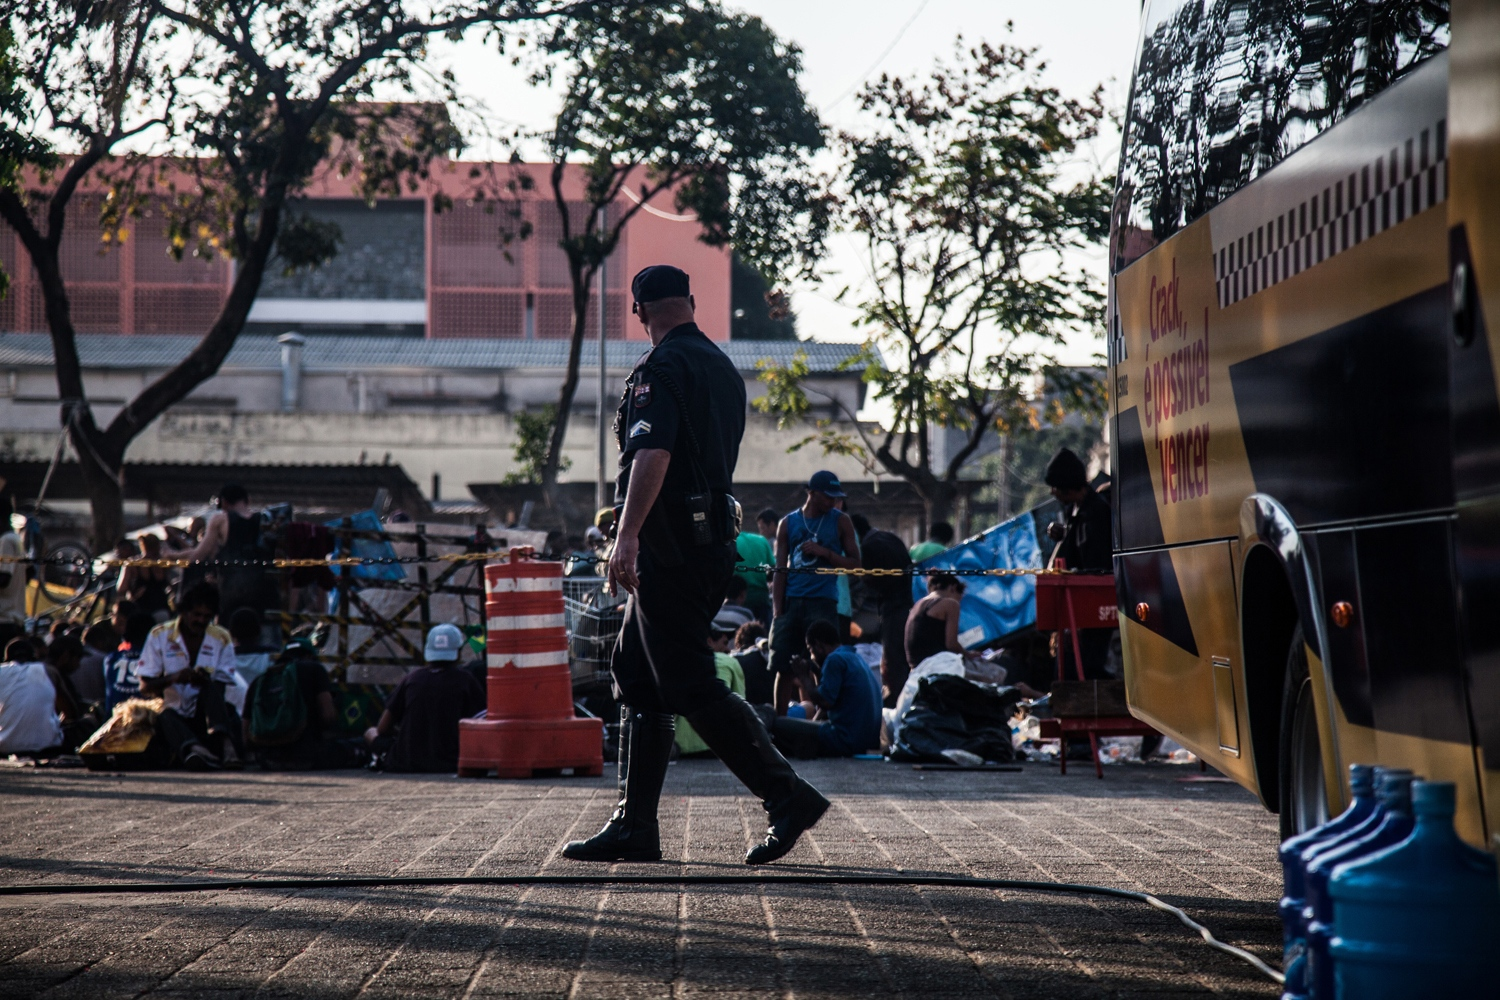 "An officer watches over the Fluxo, where users can openly consume. The writing on the van says 'It is possible to win the battle against crack'. Almost two hundred armed police are stationed nearby, on the lookout for traffickers and purse-snatchers. Until early 2014, most governmental actions regarding Cracôlandia residents have been coercive: involuntary hospitalization, violent police interventions, and forced dissipation techniques. This has recently changed, partially because crack is a hot-button issue in Brazil and voters demand the end of Cracôlandia. The police have unofficially declared crack users ""sick people"" instead of criminals, but buying and selling is illegal."